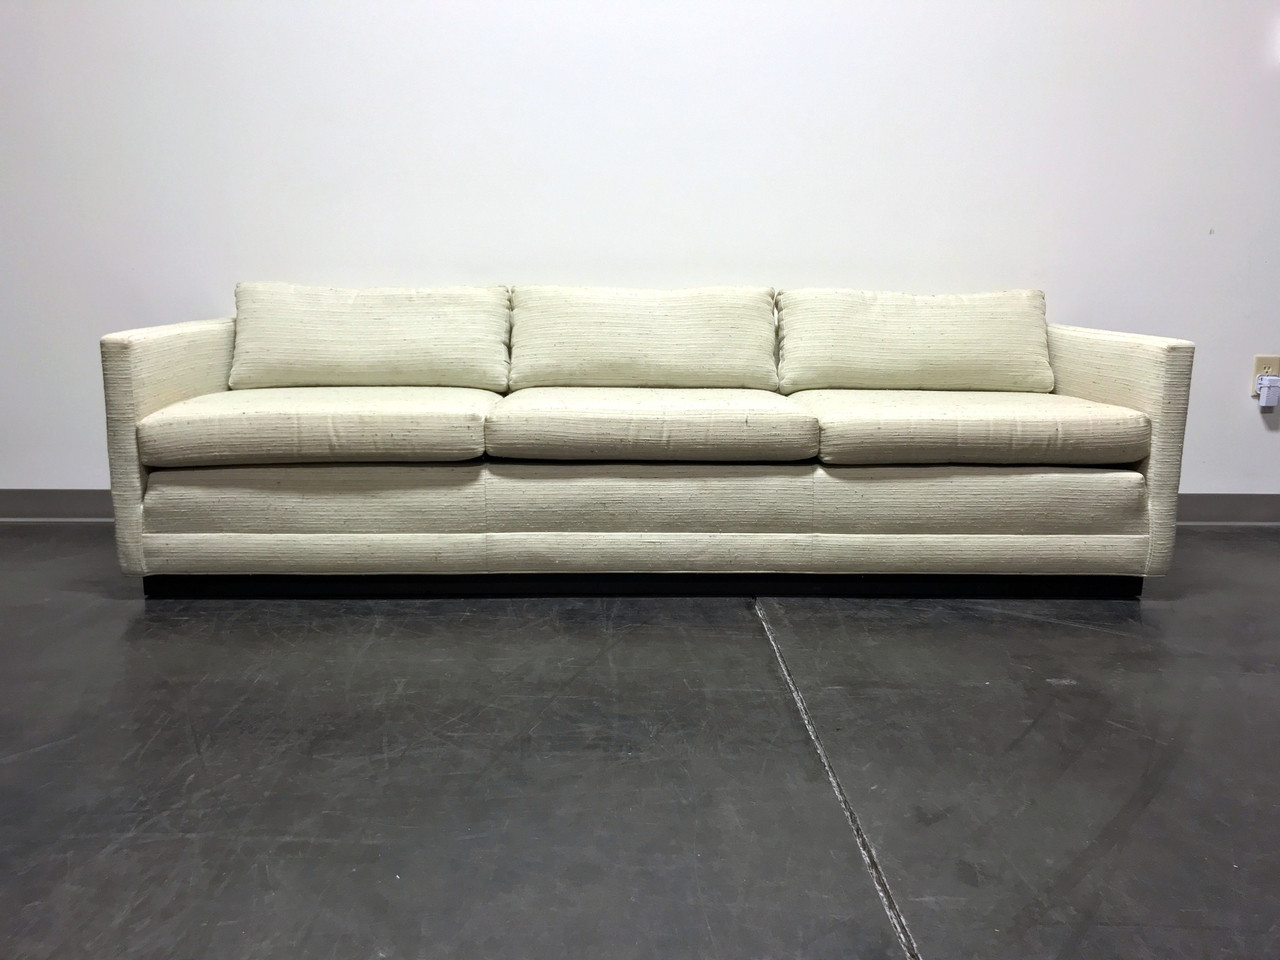 Gentil Mid Century Modern MCM Cube Sofa In The Style Of Jack Cartwright